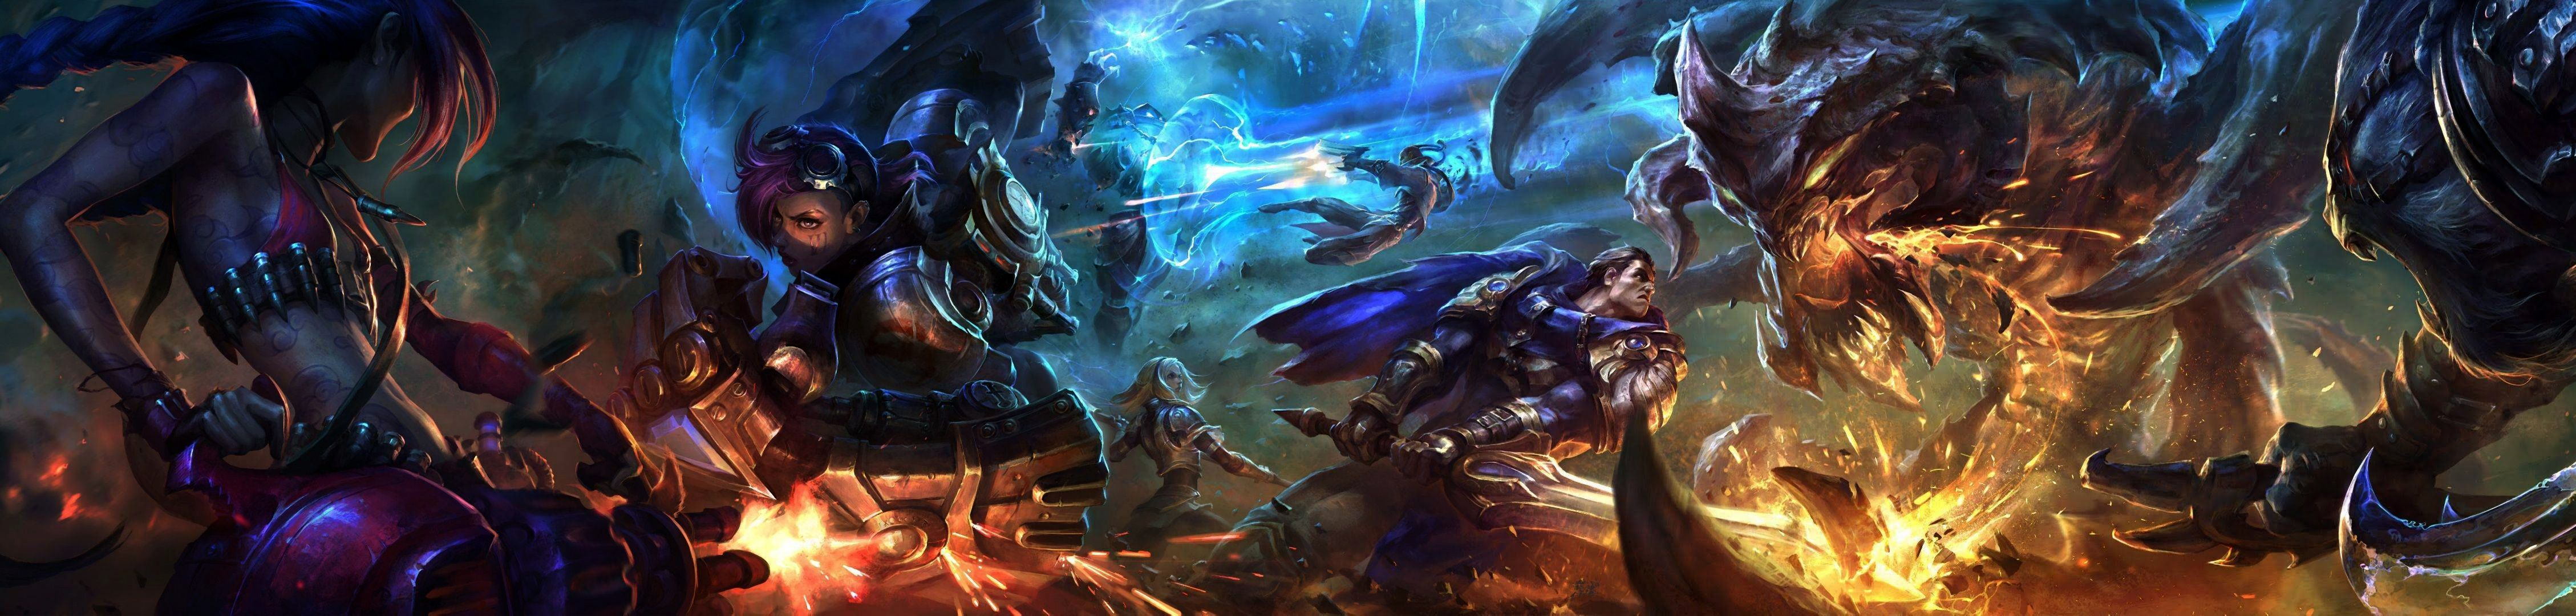 League Of Legends Dual Monitor Wallpapers Top Free League Of